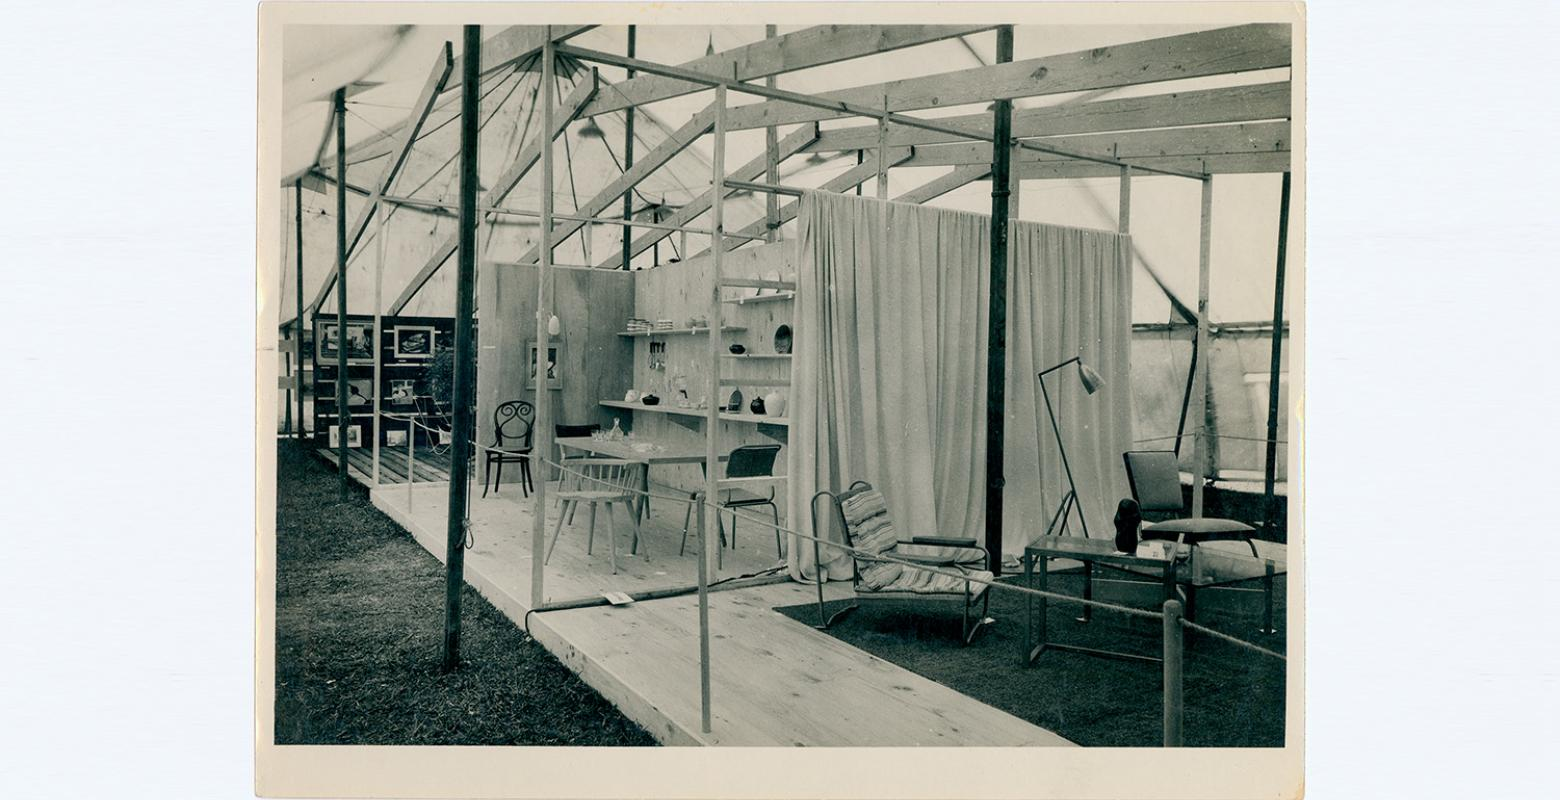 Black and white photo of a scene of a room on pallets in a marquee tent